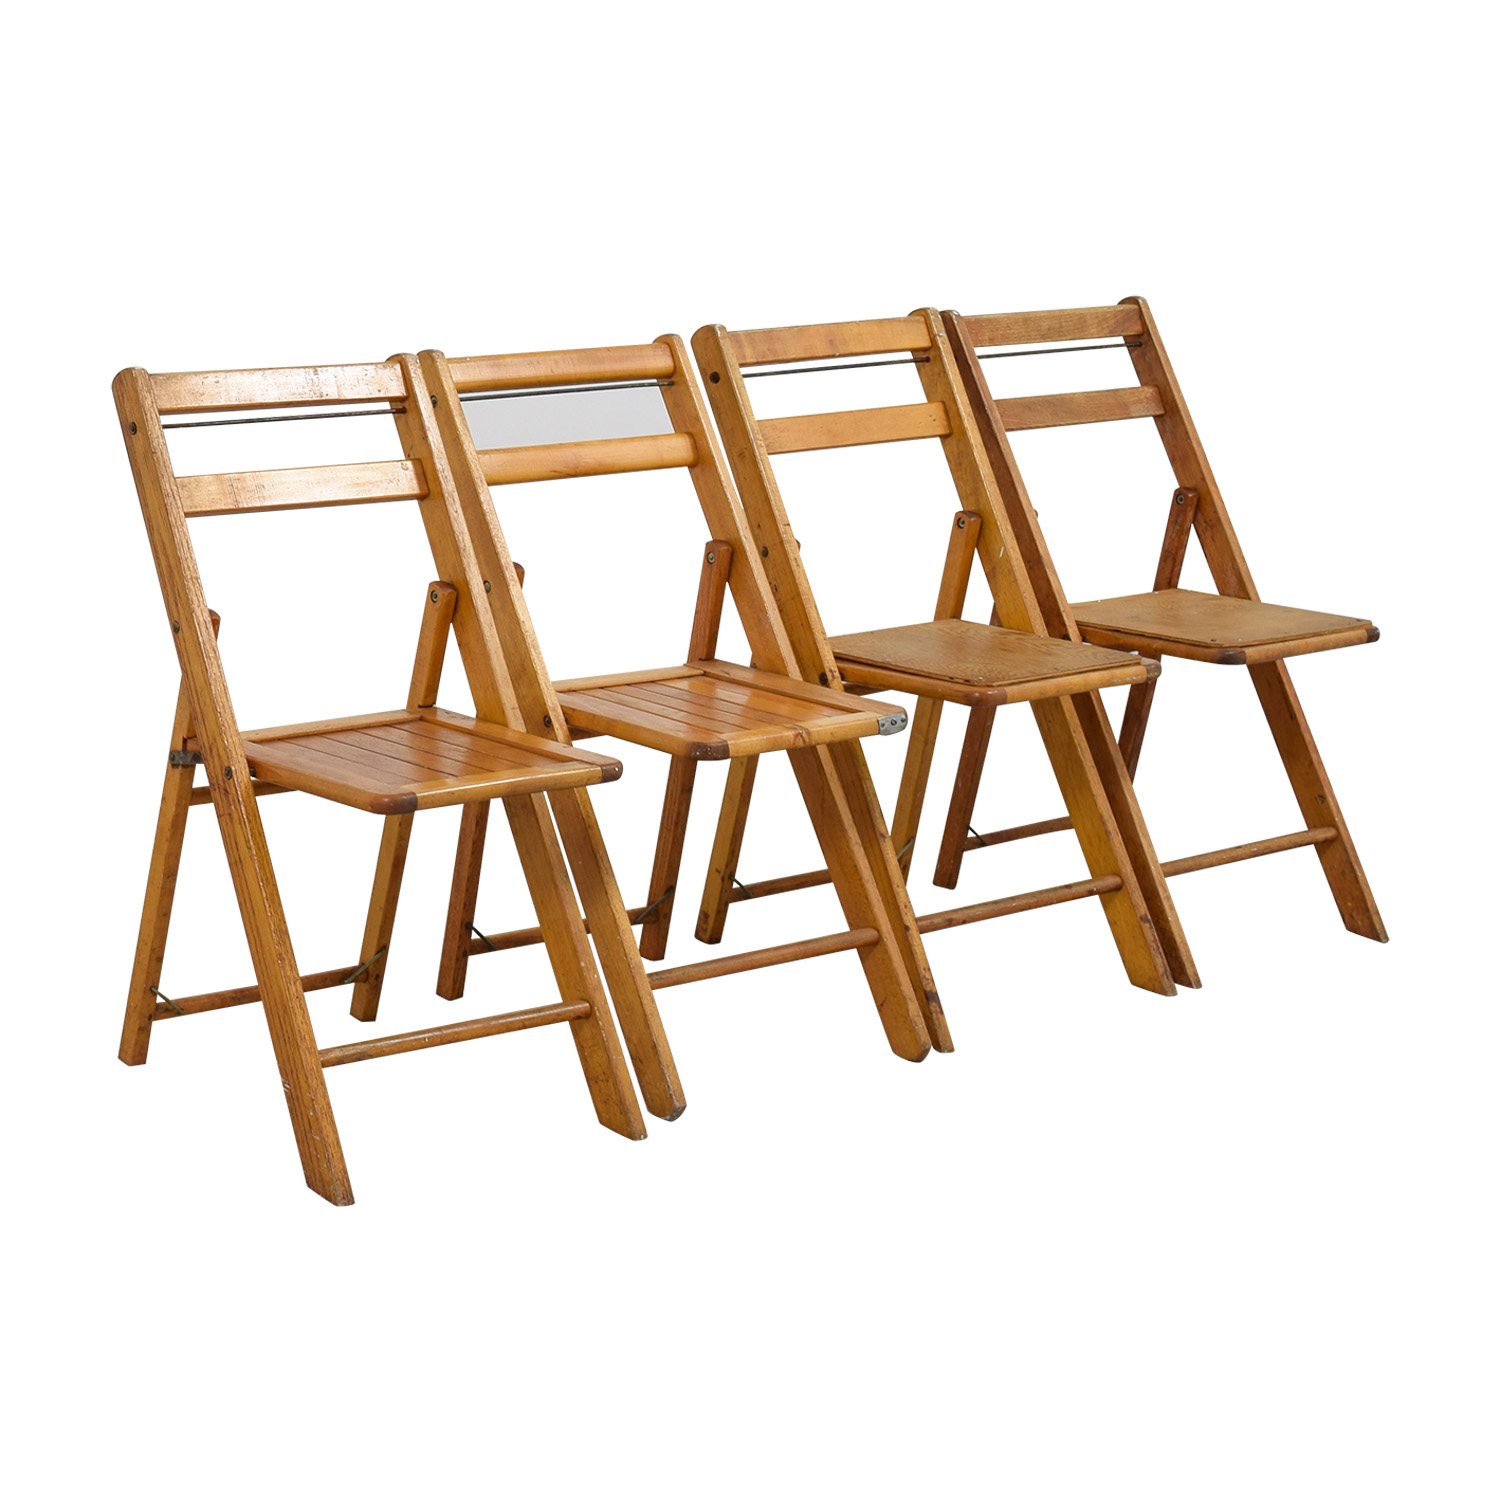 OFF Rustic Wood Folding Chairs Chairs